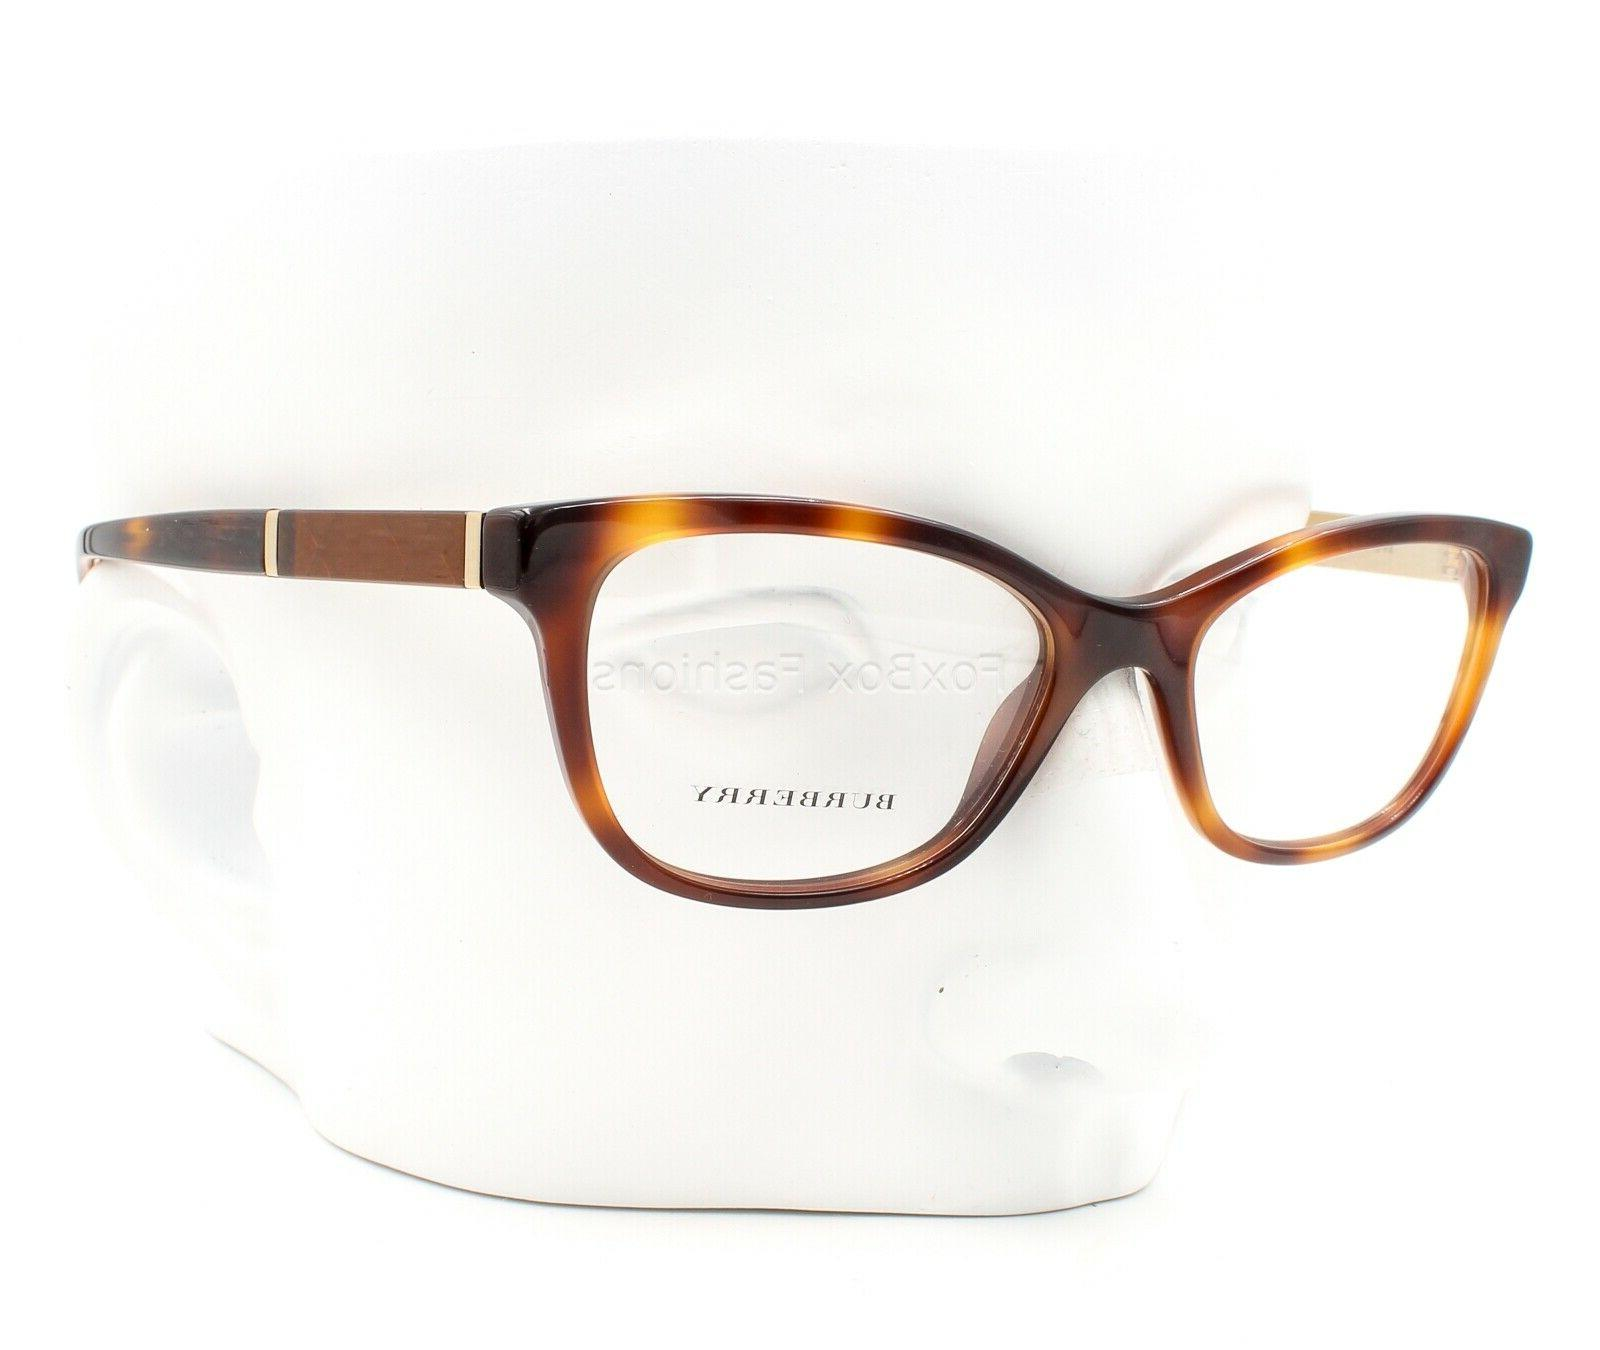 size 51 17 140 eyeglasses frames glasses